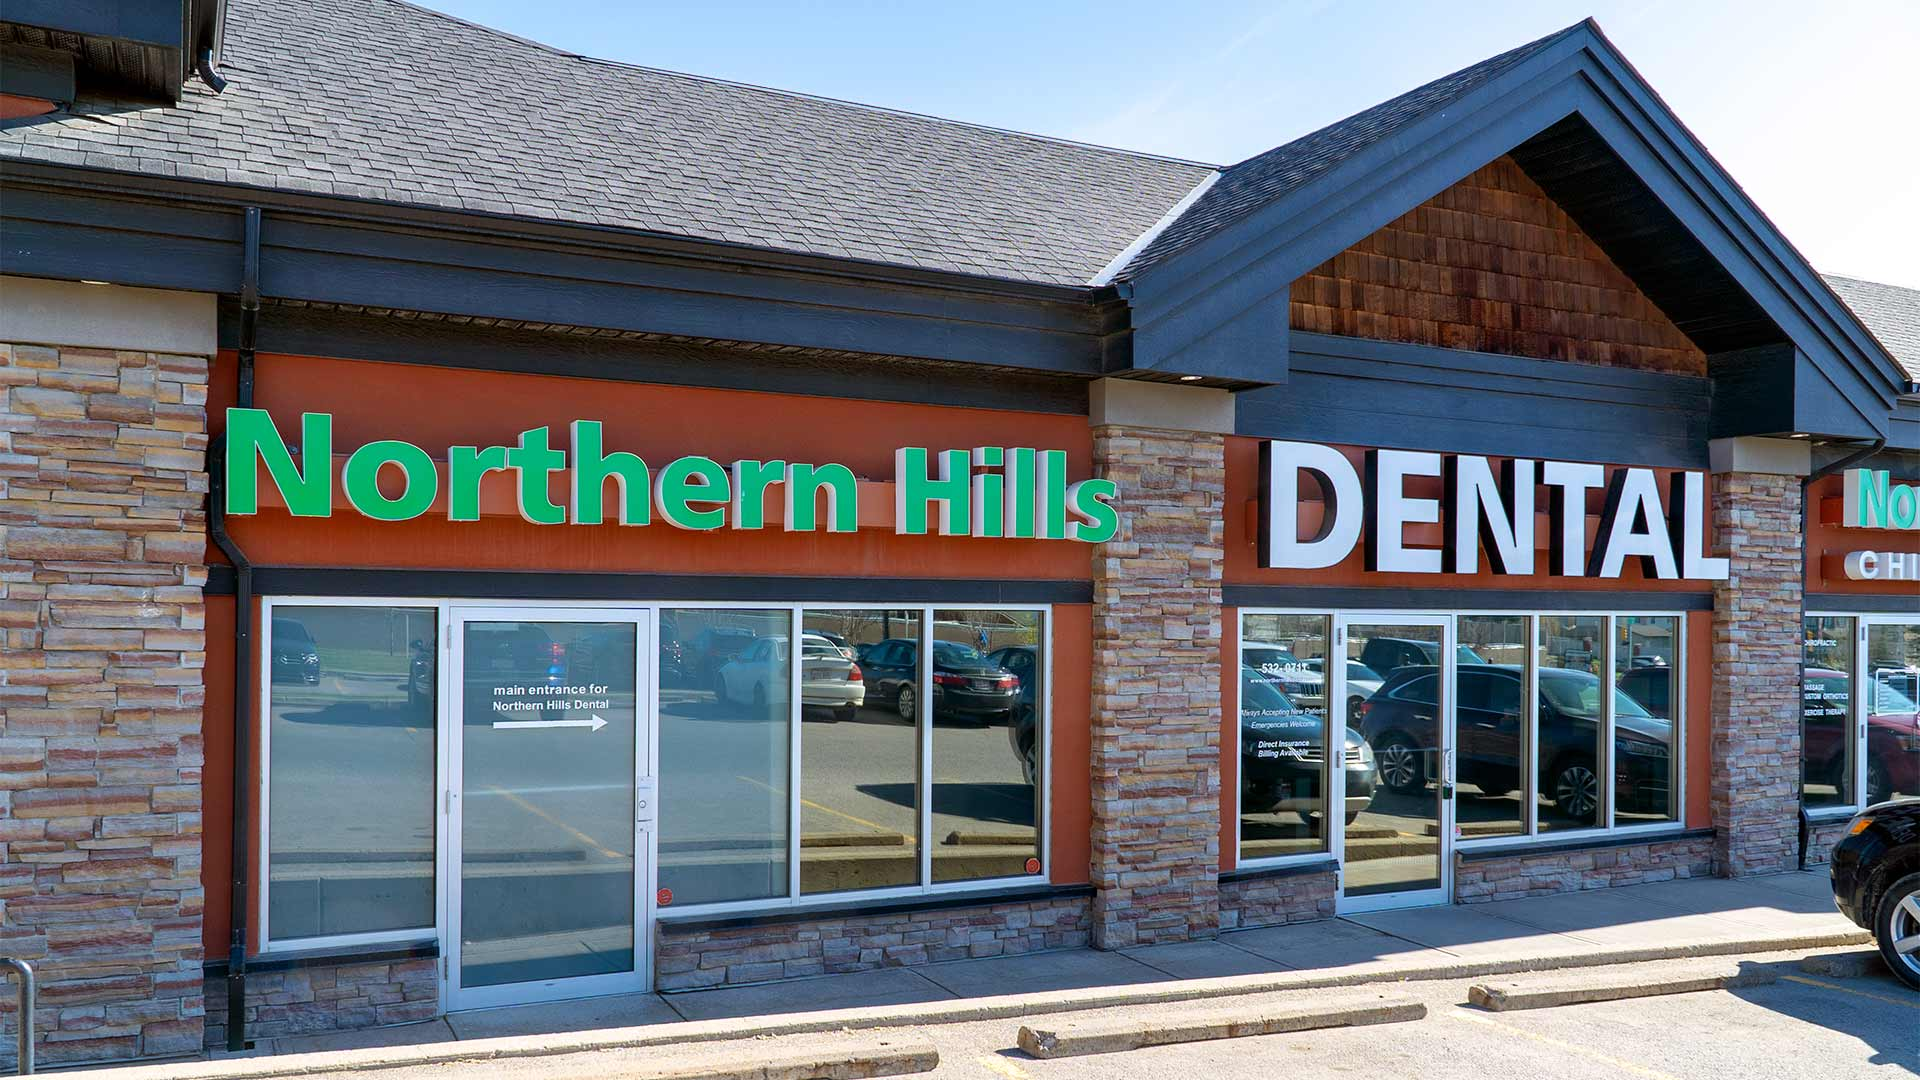 Northern Hills Dental Exterior